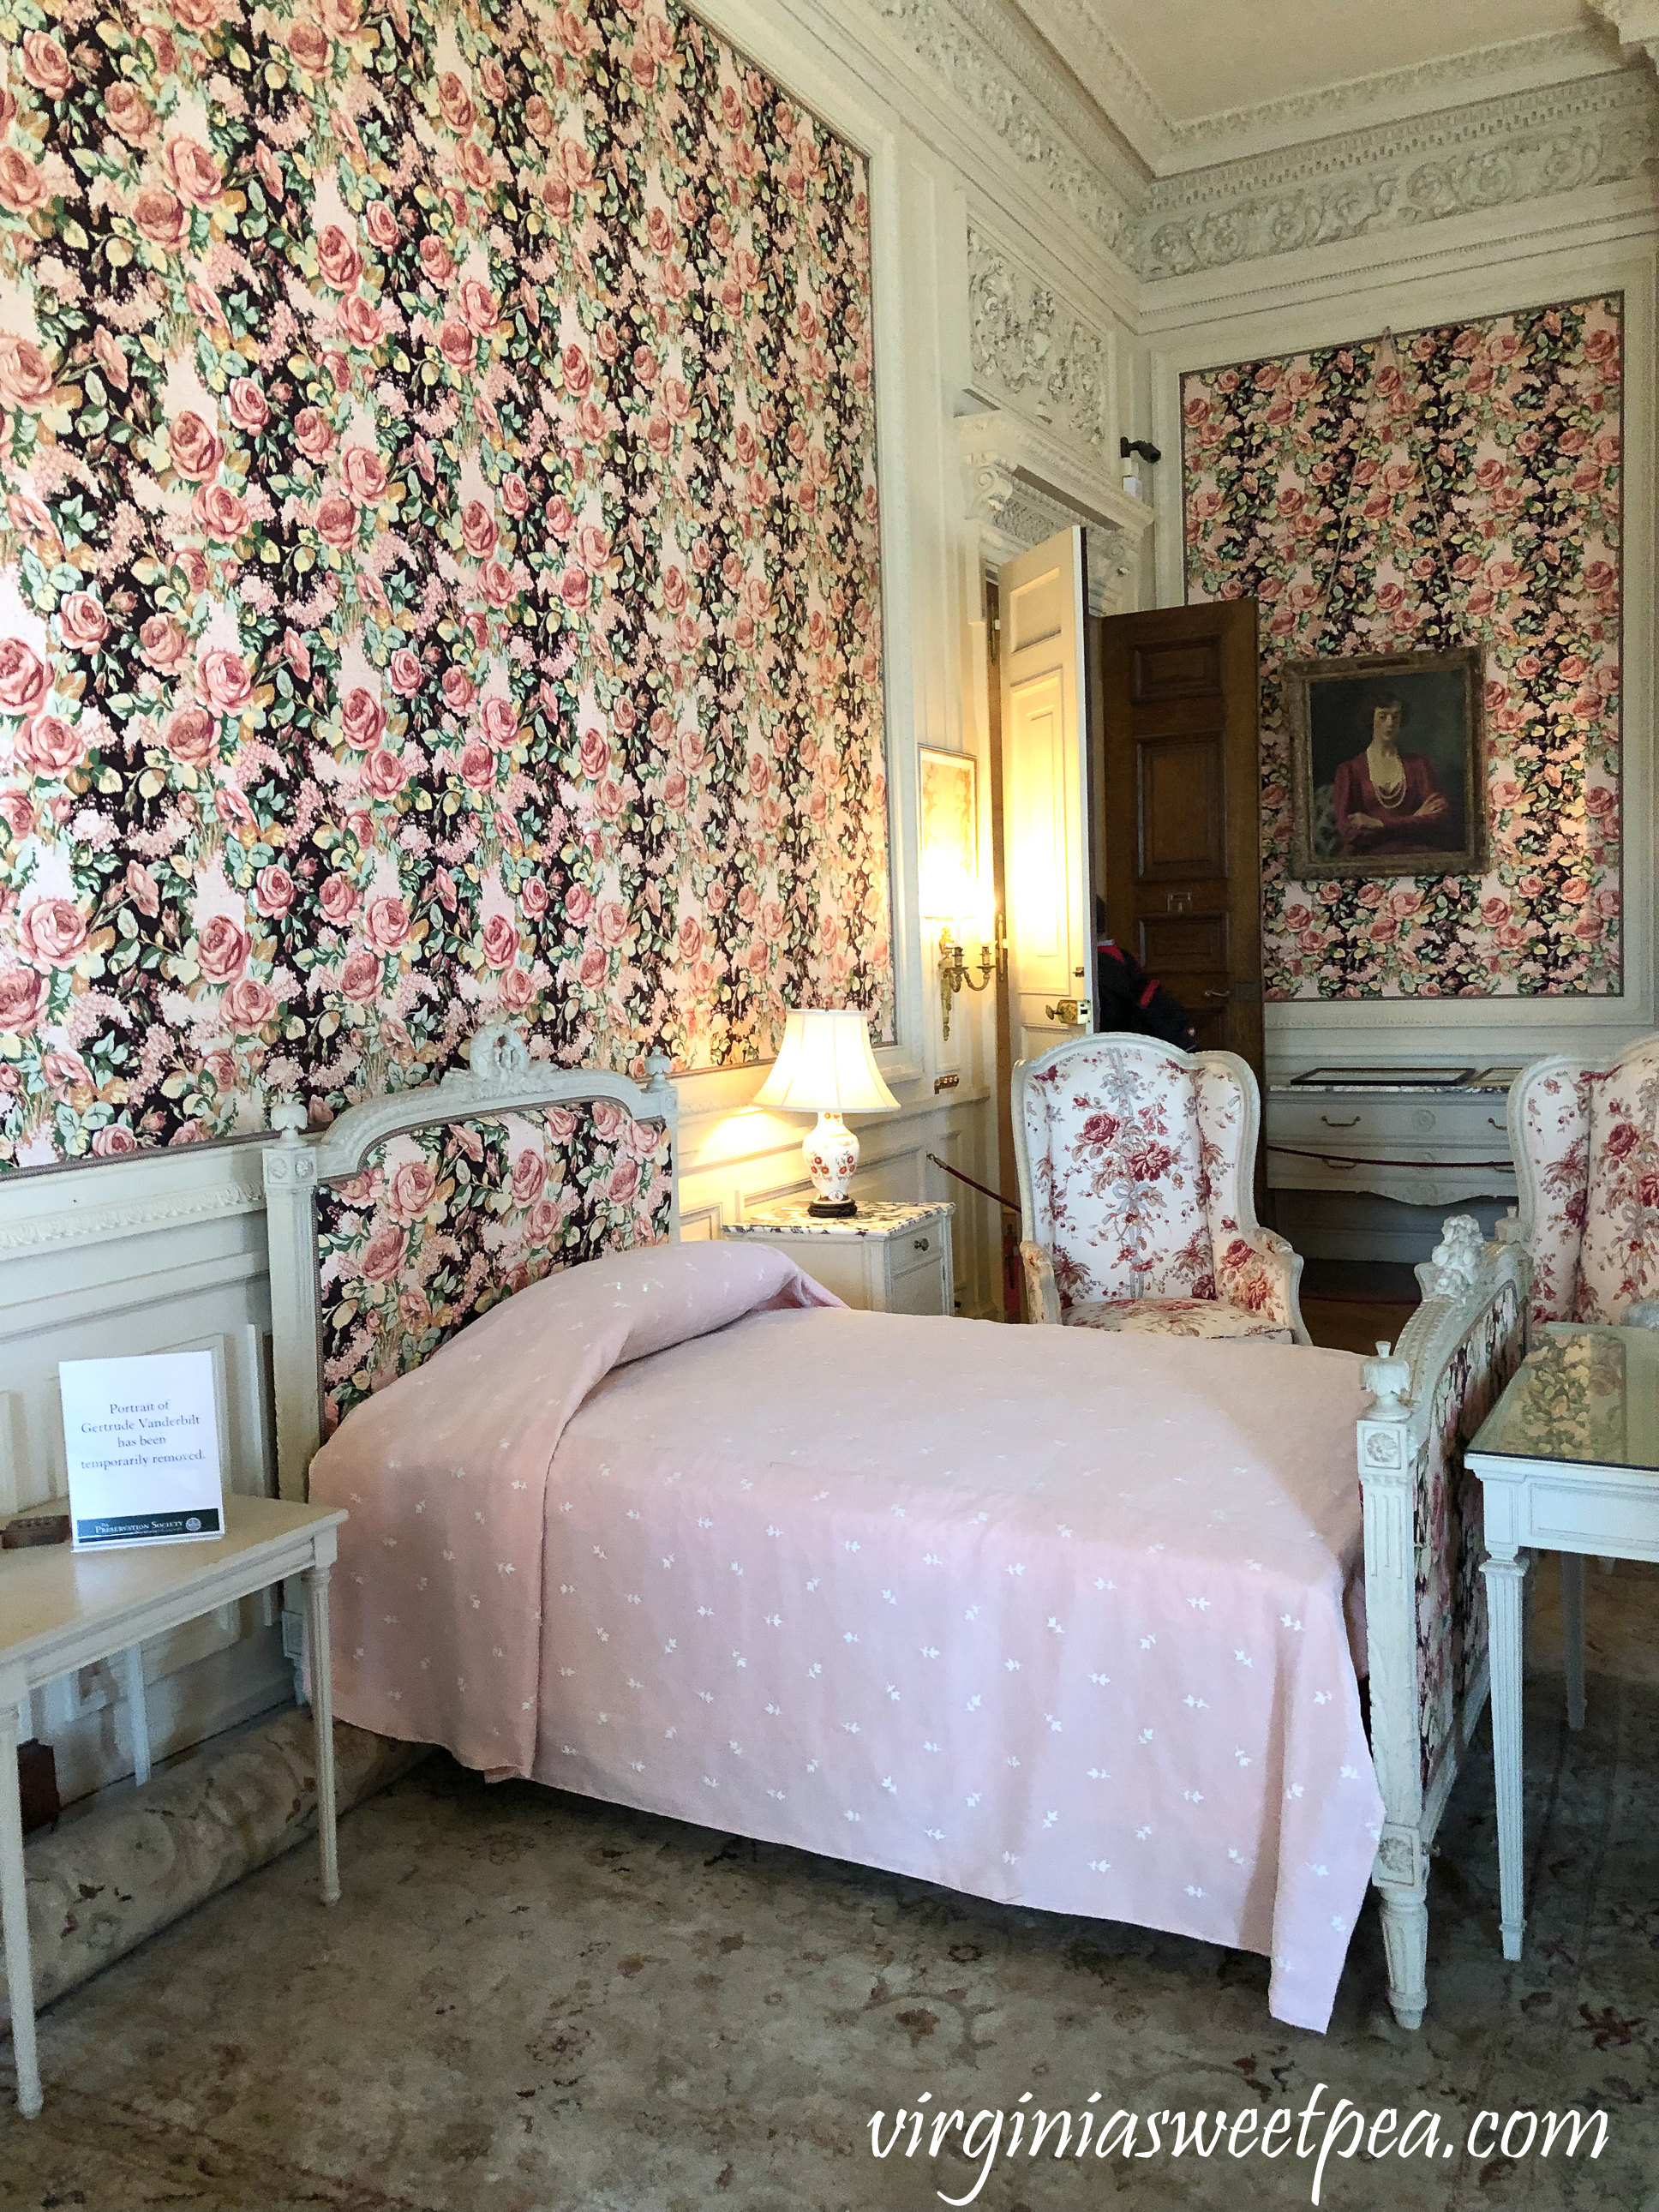 Mrs. Vanderbilt's bedroom at The Breakers in Newport, RI